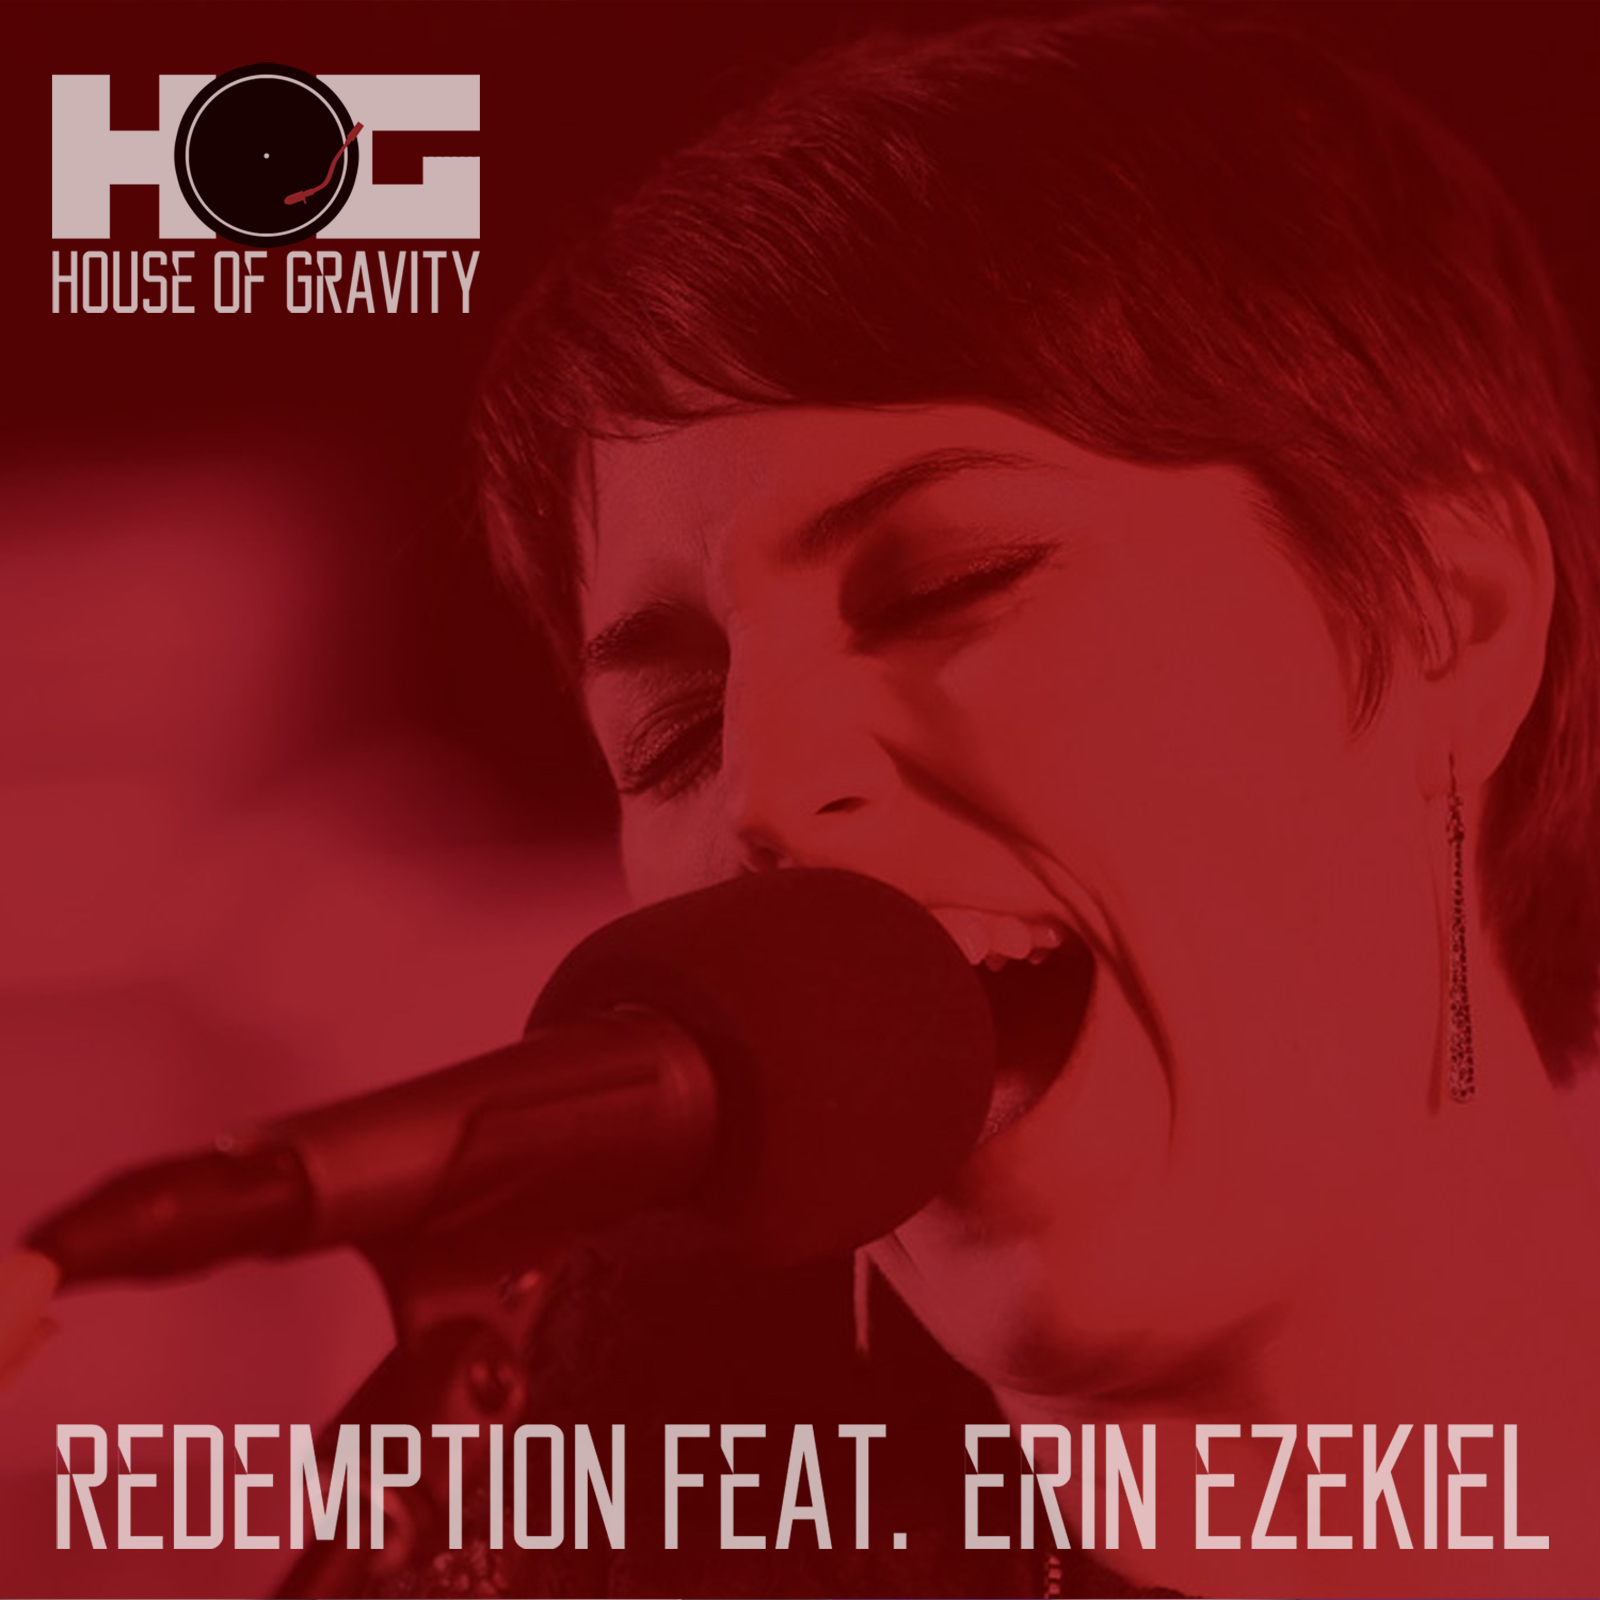 Redemption feat Erin Ezekiel by House of Gravity